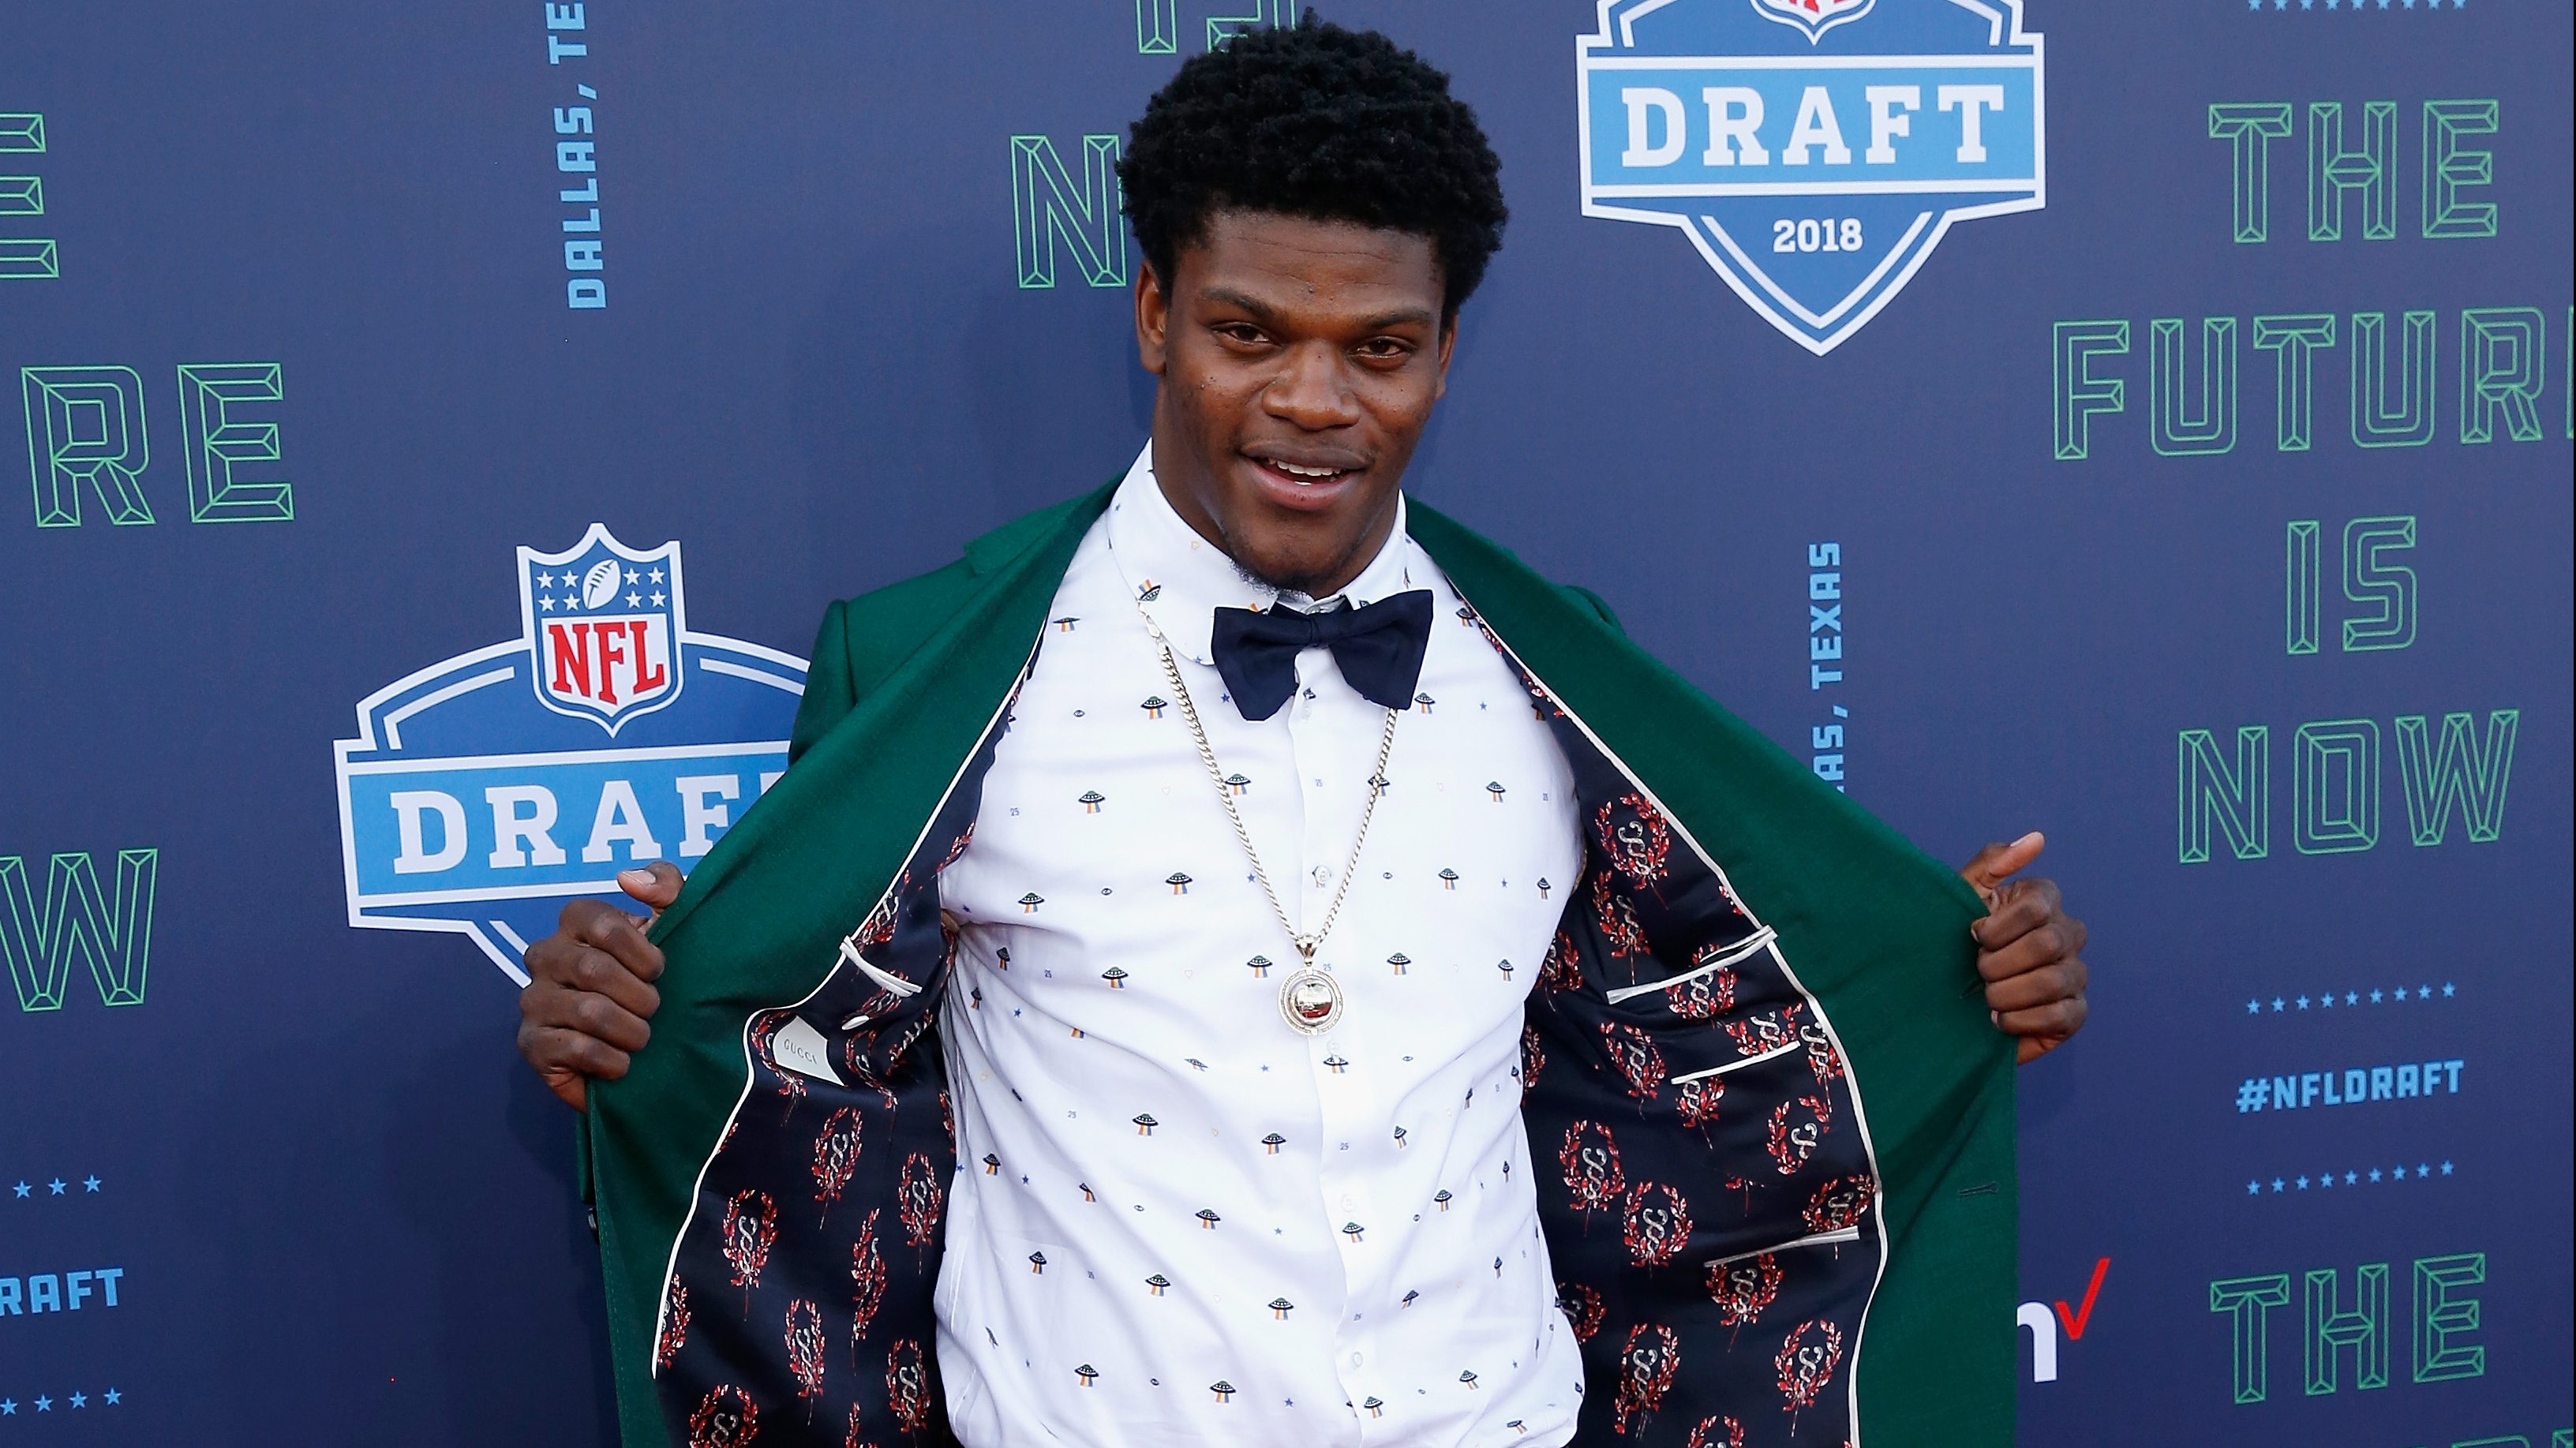 2018 NFL Draft – Red Carpet